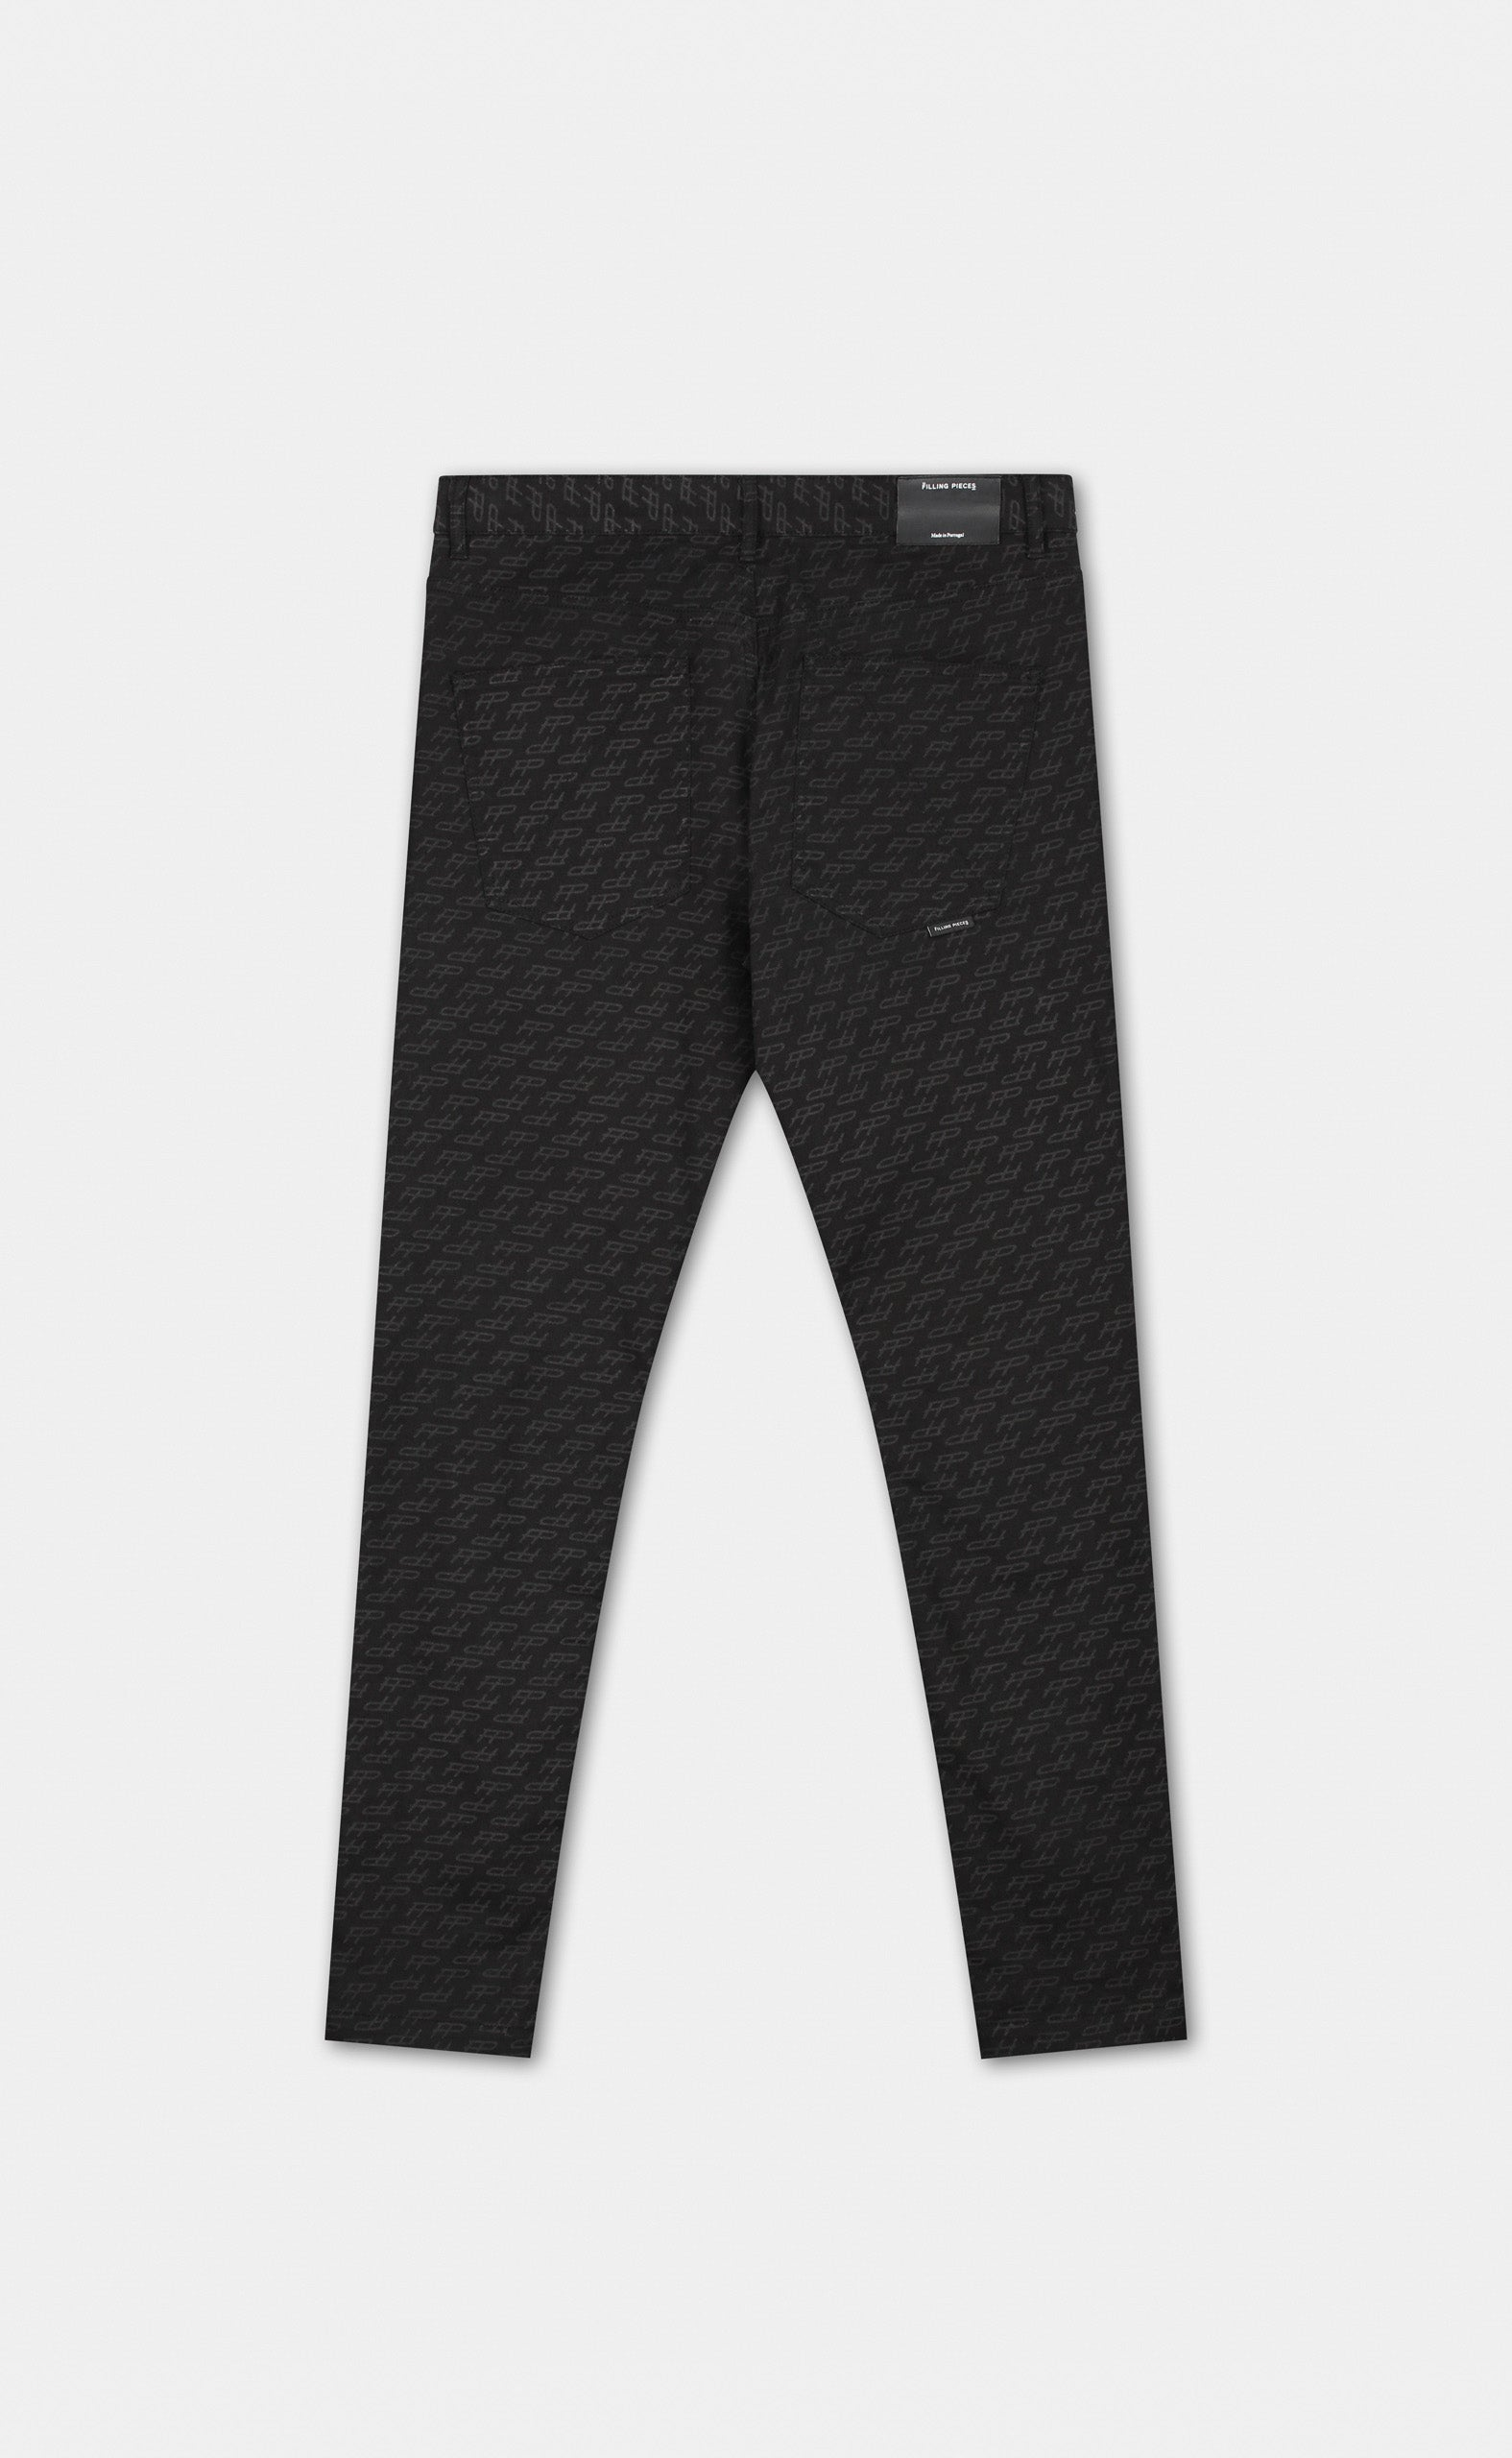 Jeans FP Monogram Black - men